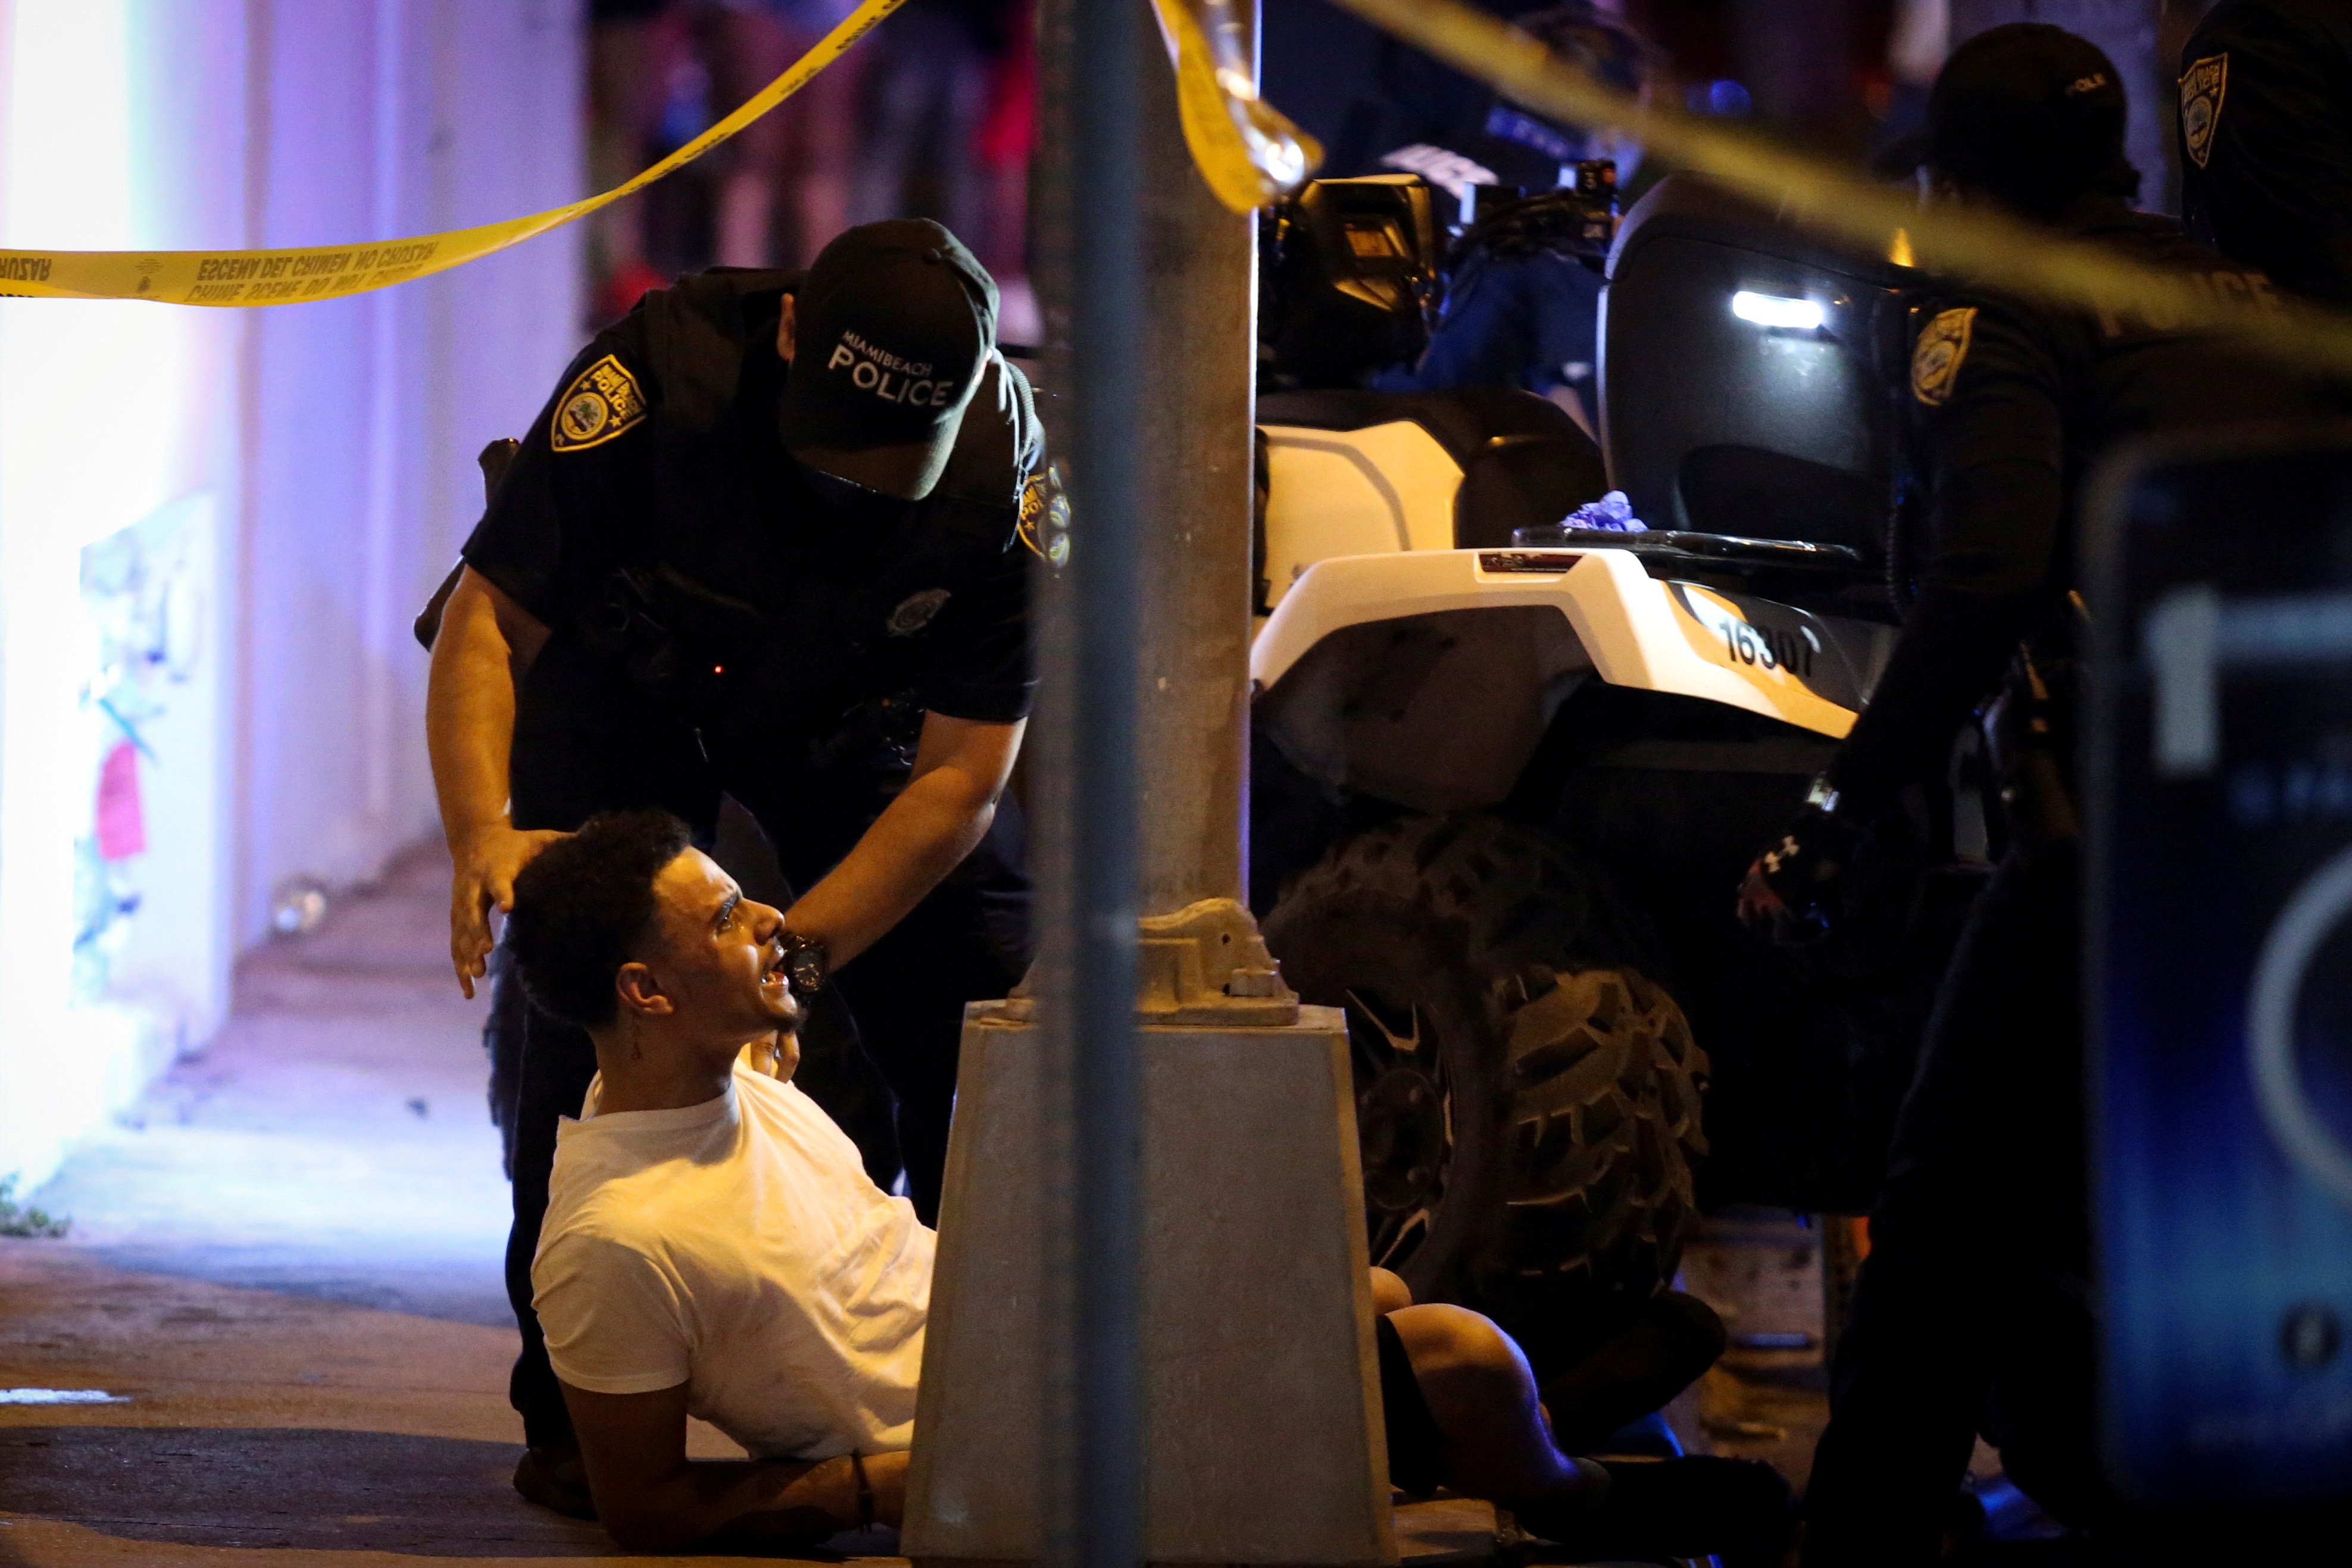 Police officers detain a man as they enforce an 8pm curfew imposed by local authorities on spring break festivities, amid the coronavirus disease (COVID-19) pandemic, in Miami Beach, Florida, U.S., March 20, 2021. REUTERS/Marco Bello    DAY